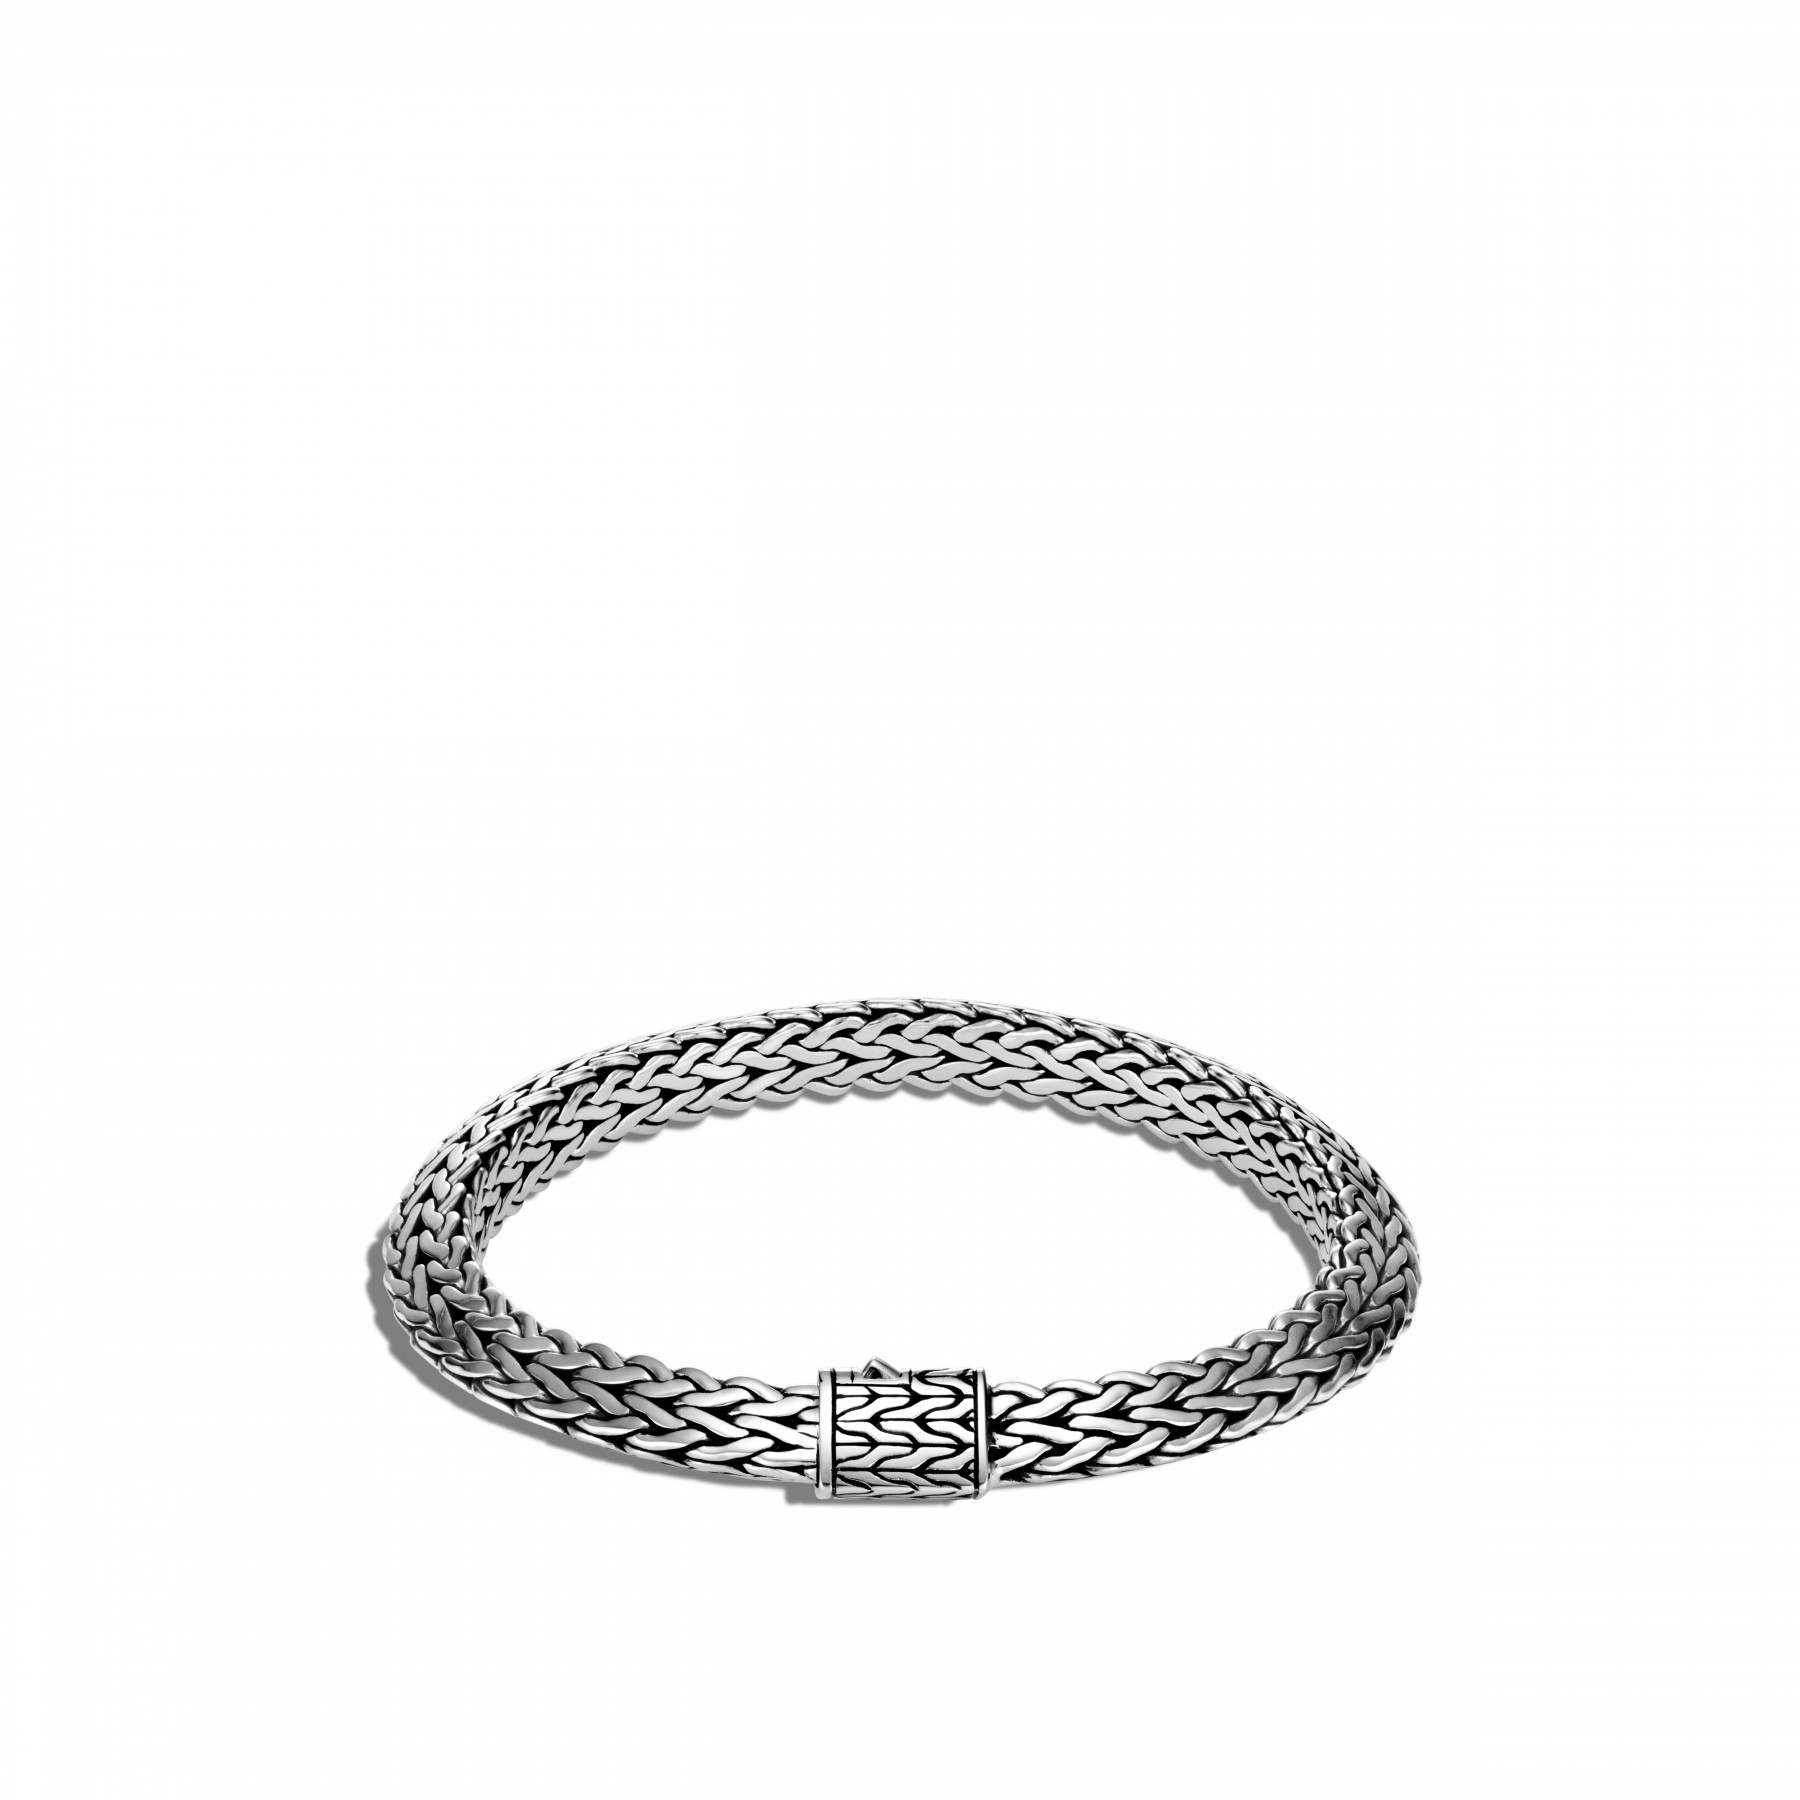 John Hardy Classic Chain Silver Tiga Bracelet - 8mm front view